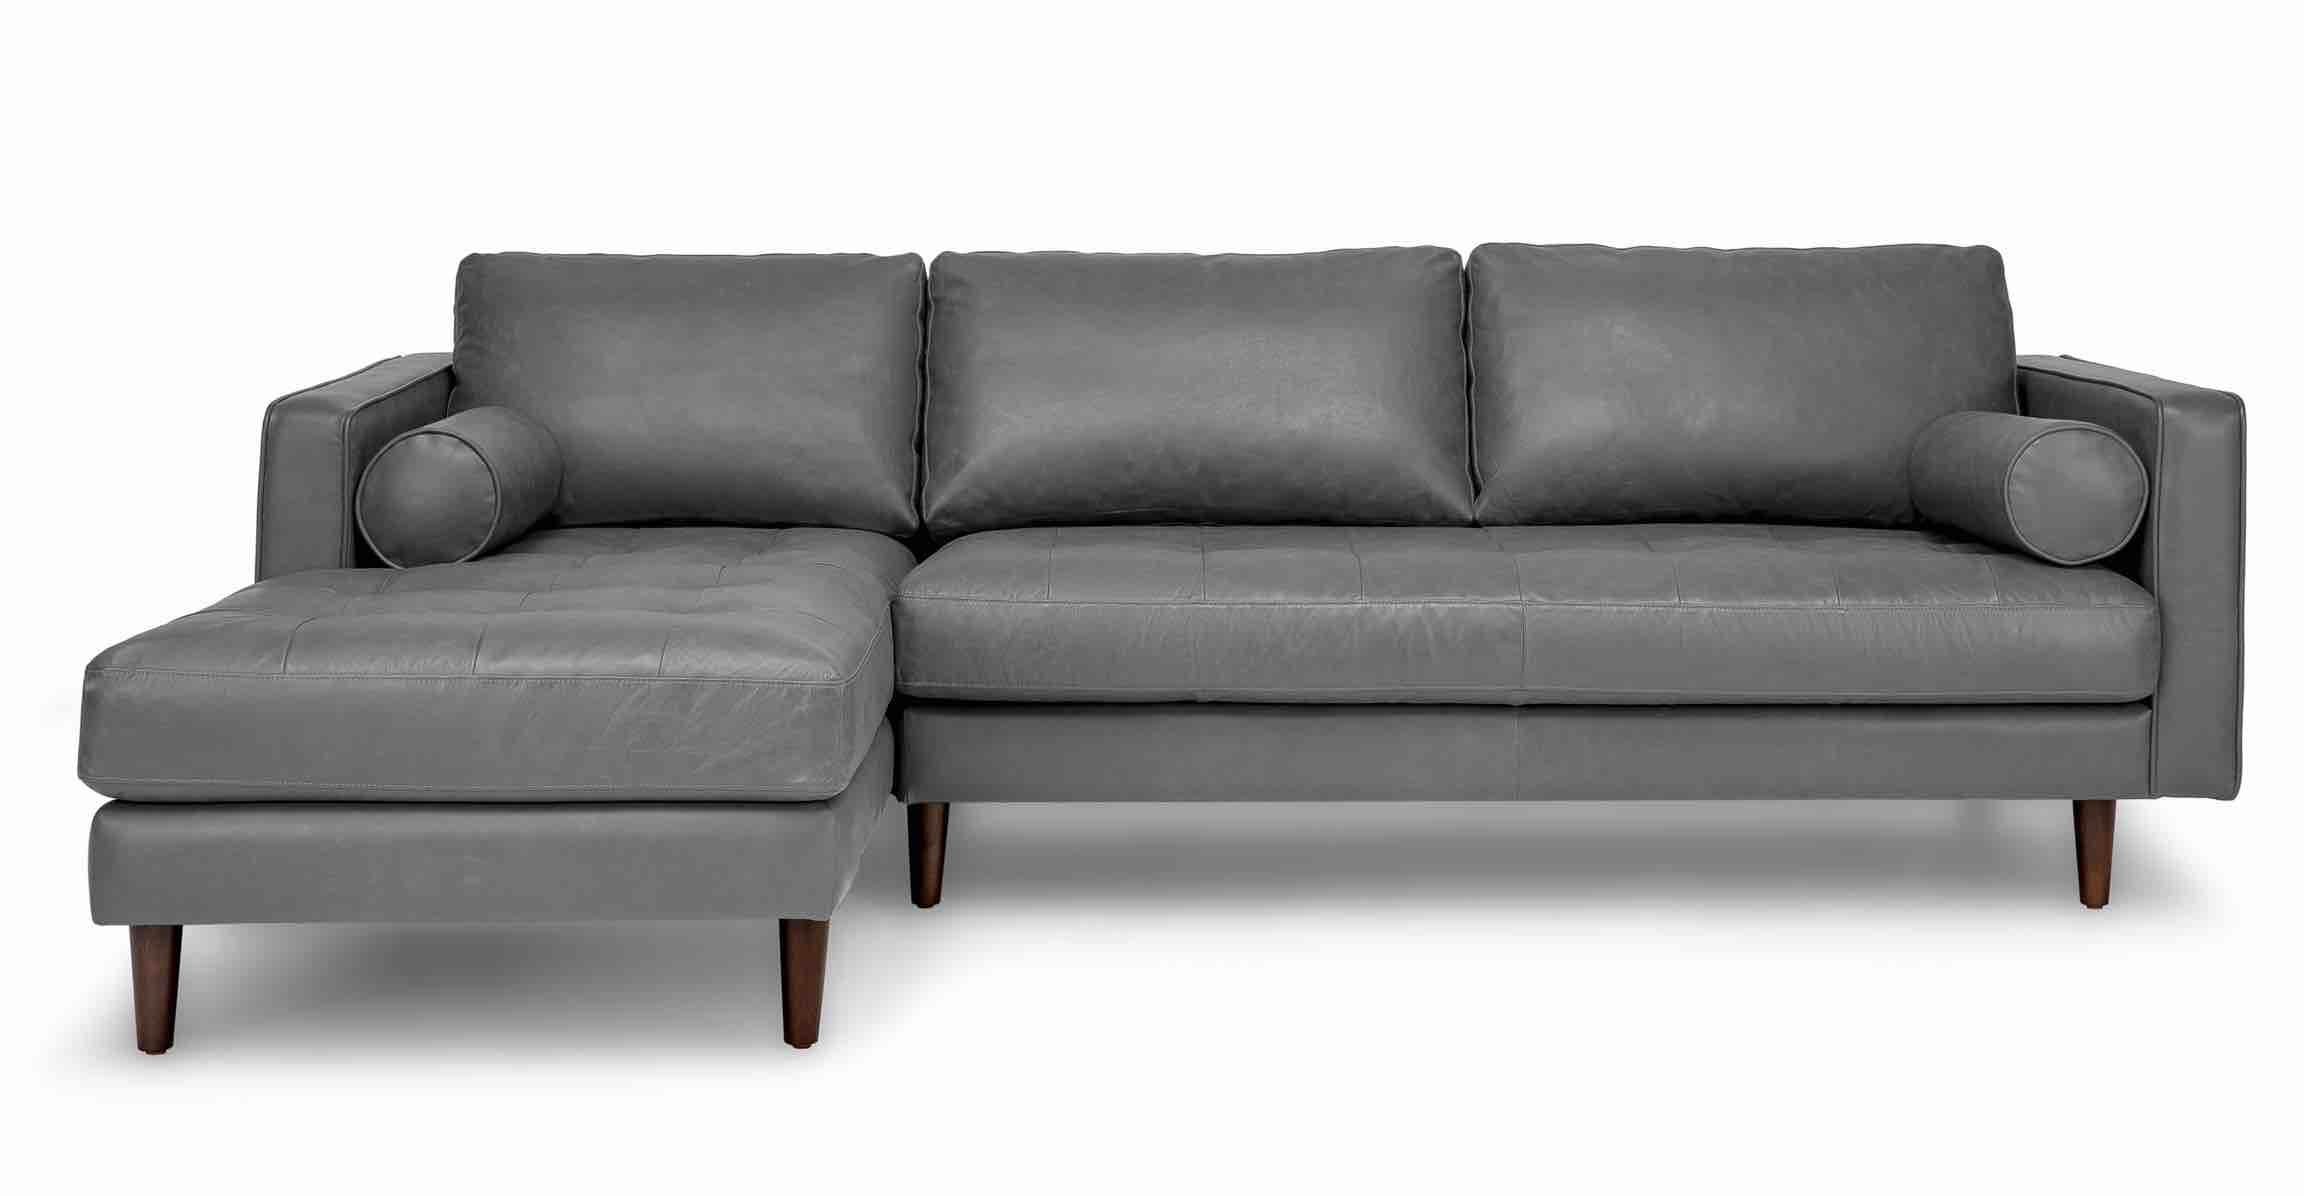 Gray Leather Sofa Tufted Seat With Bolsters Article Sven Modern  ~ Grey Leather Tufted Sofa